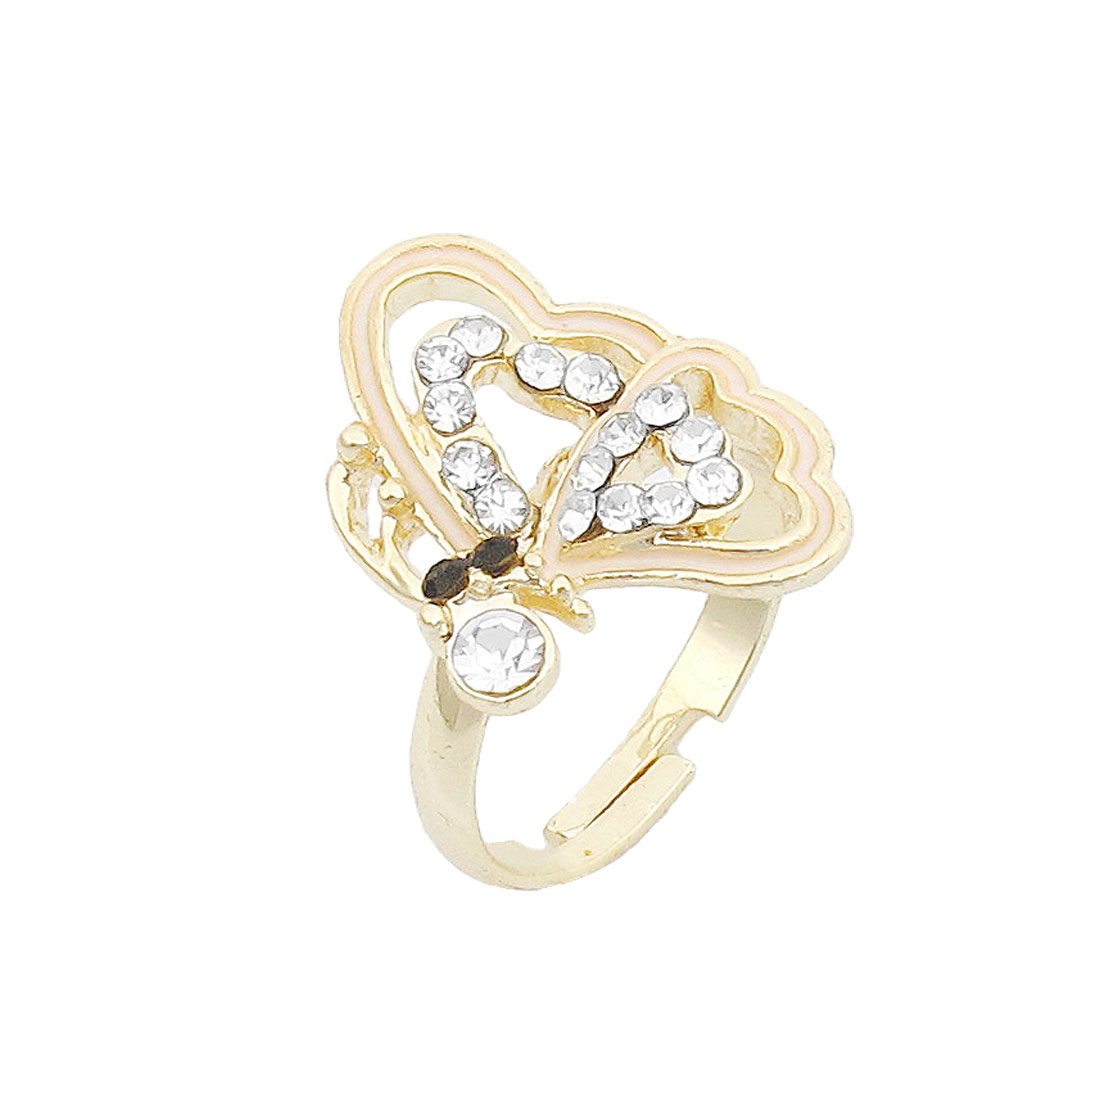 Women Rhinestone Butterfly Accent Gold Tone Adjustable Finger Ring US Size 7